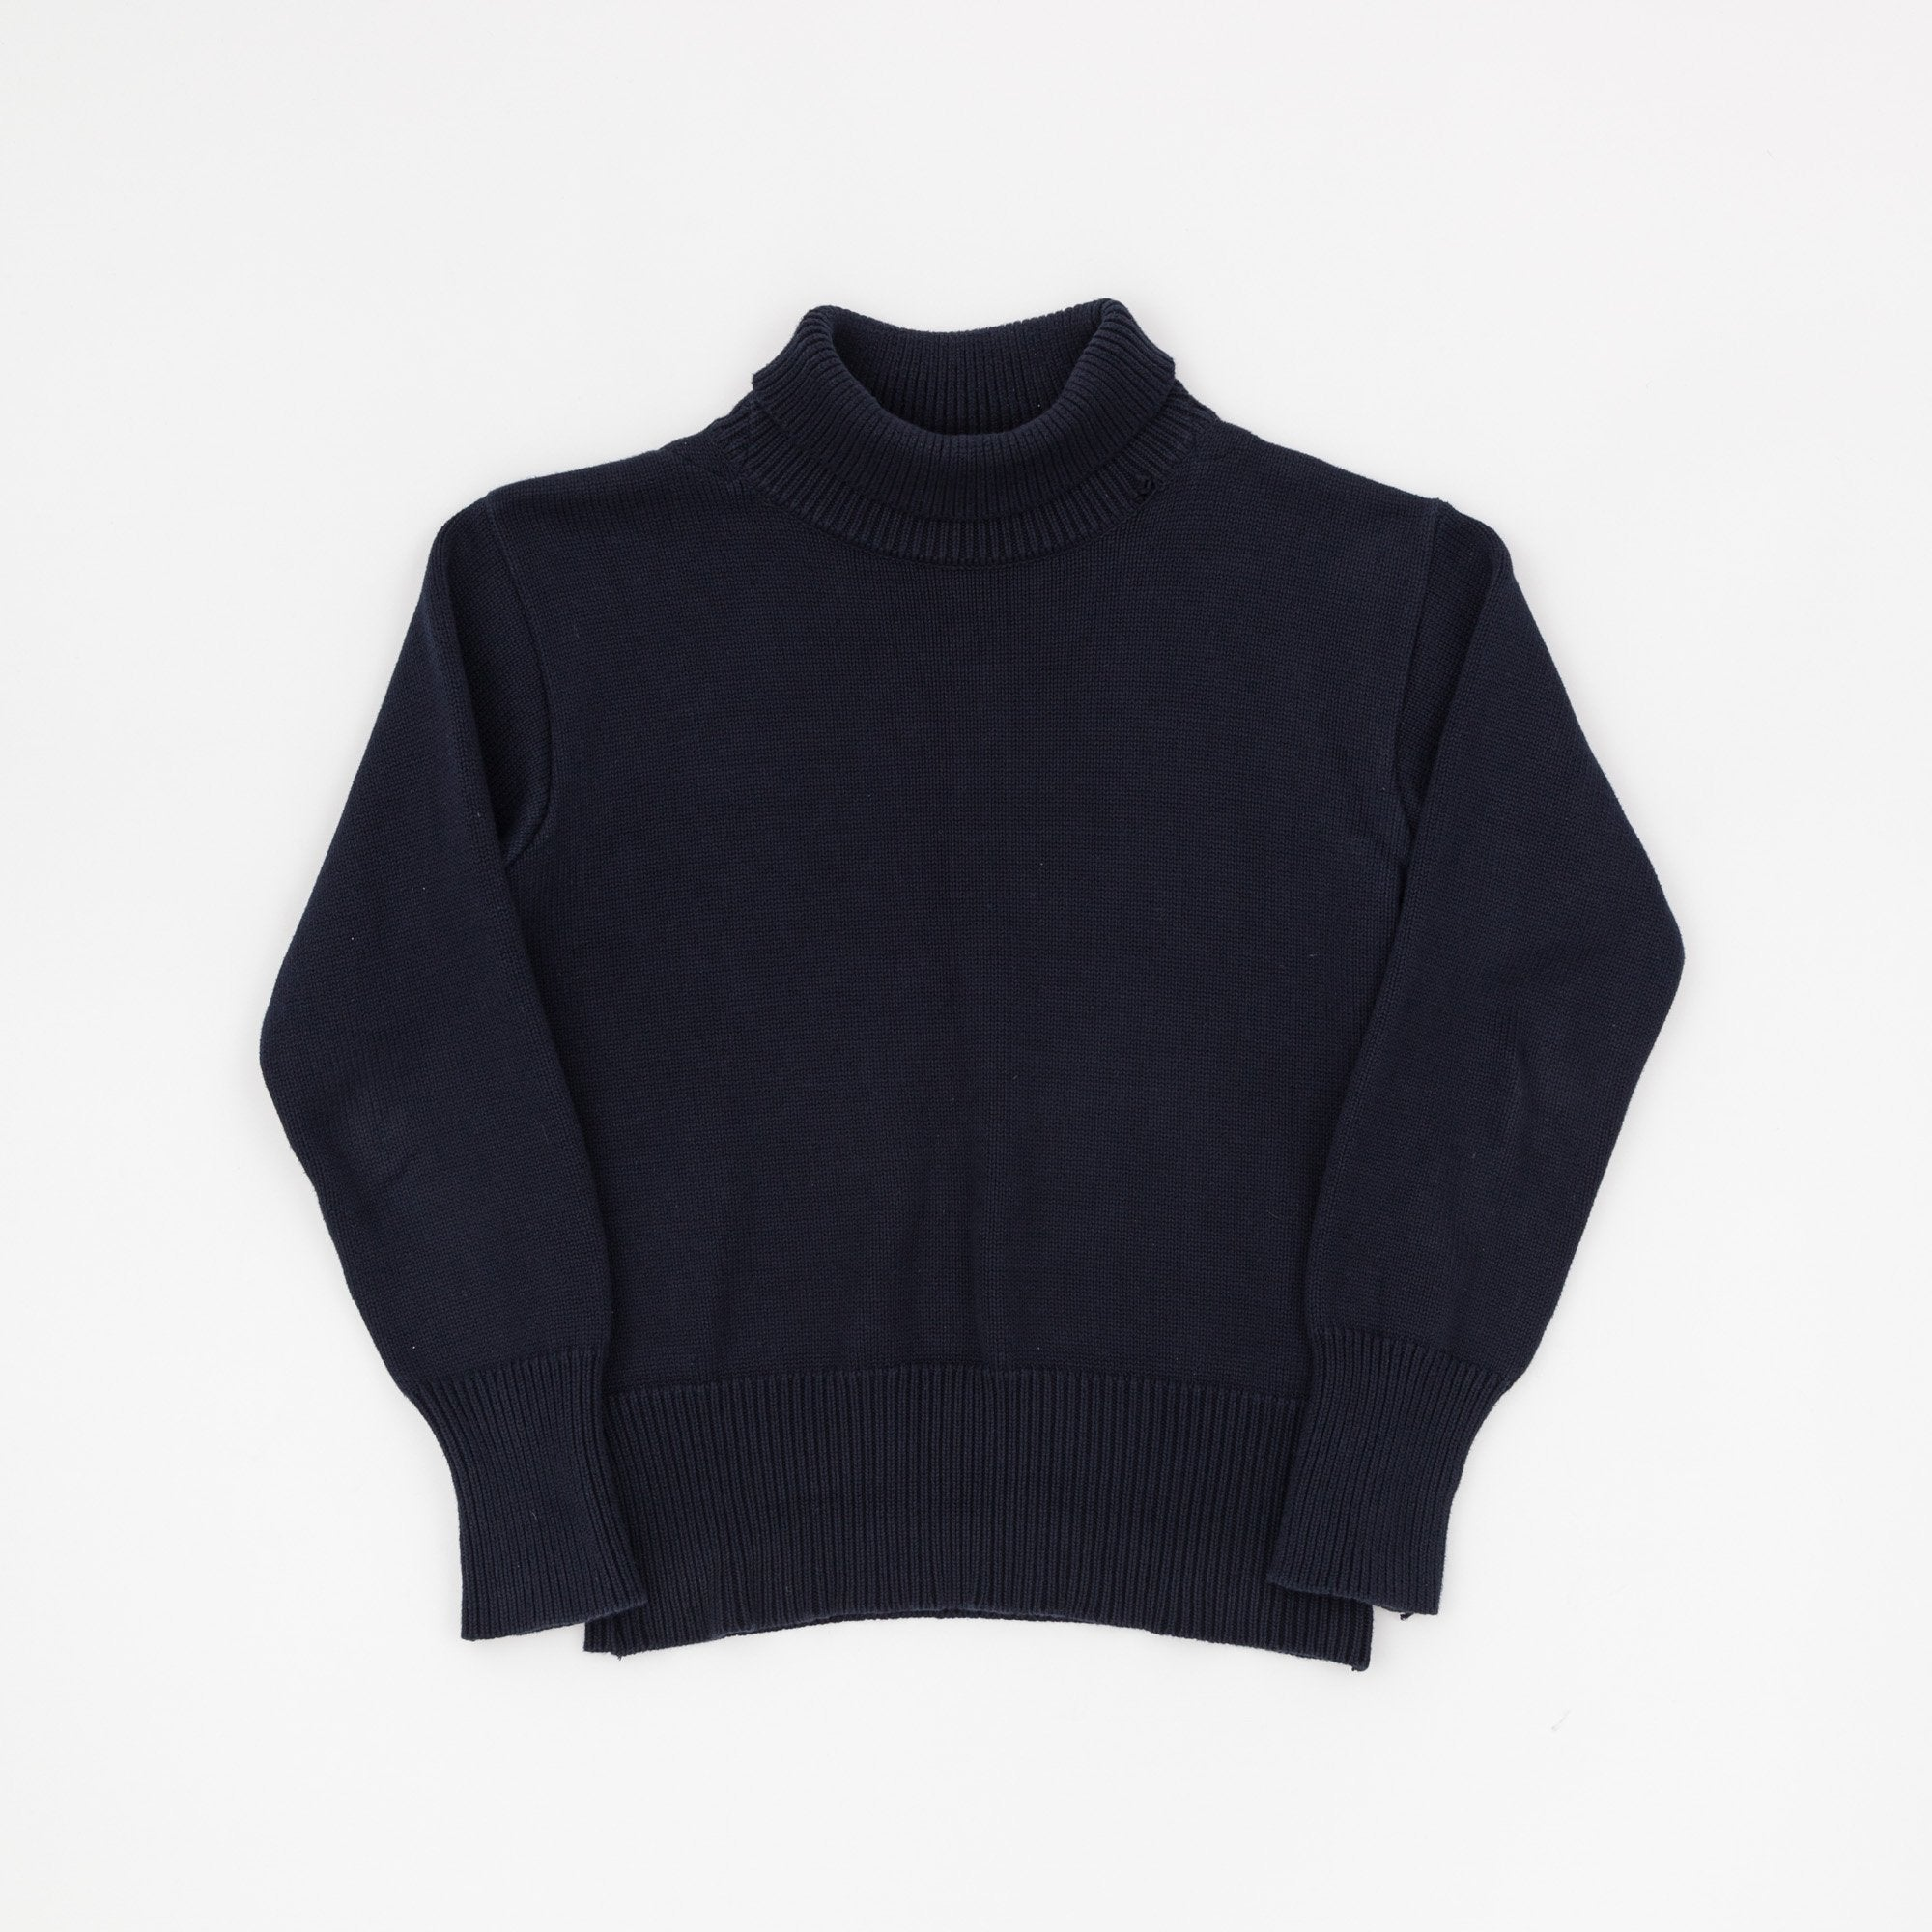 North Sea Clothing Submariner Sweater